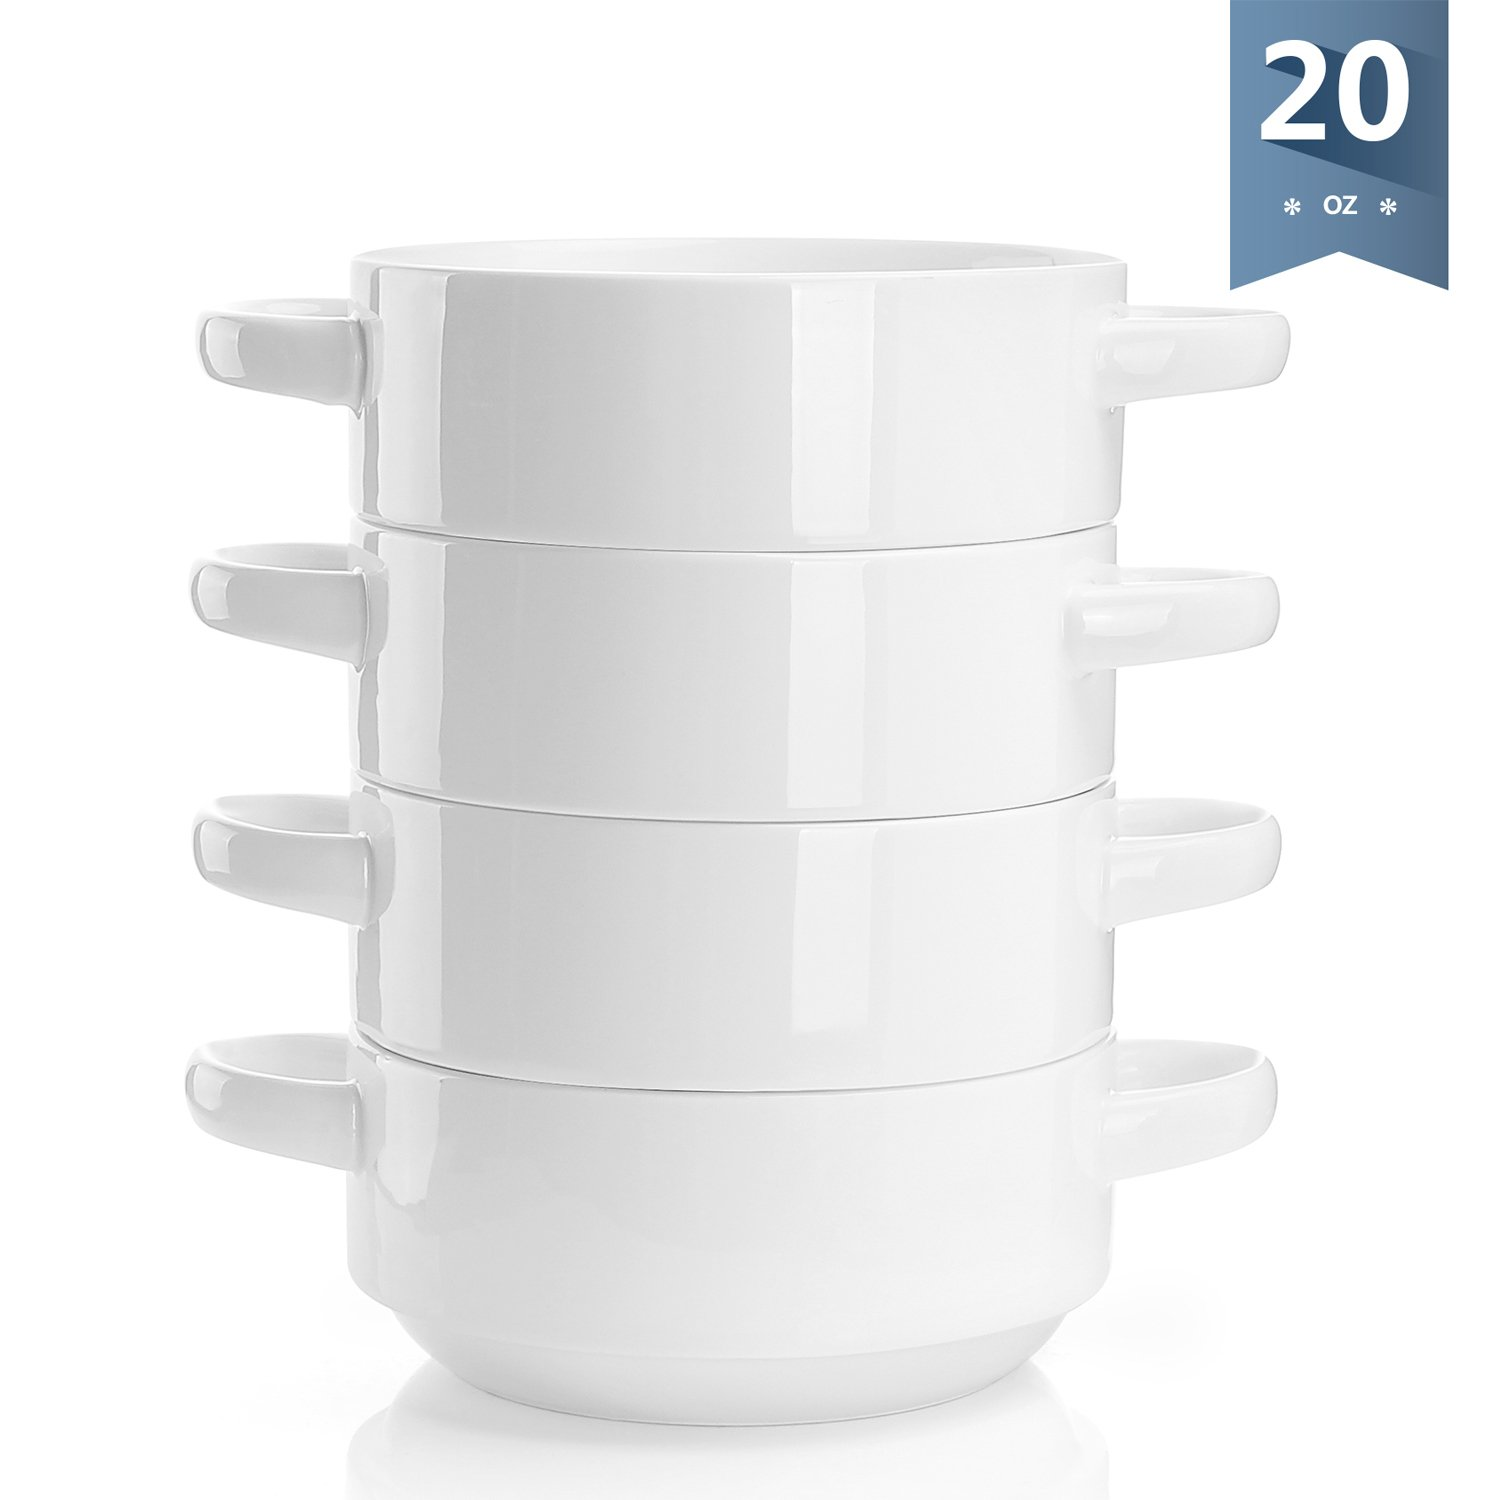 Sweese 1305 Porcelain Bowls with Handles - 20 Ounce for Soup, Cereal, Stew, Chill, Set of 4, White